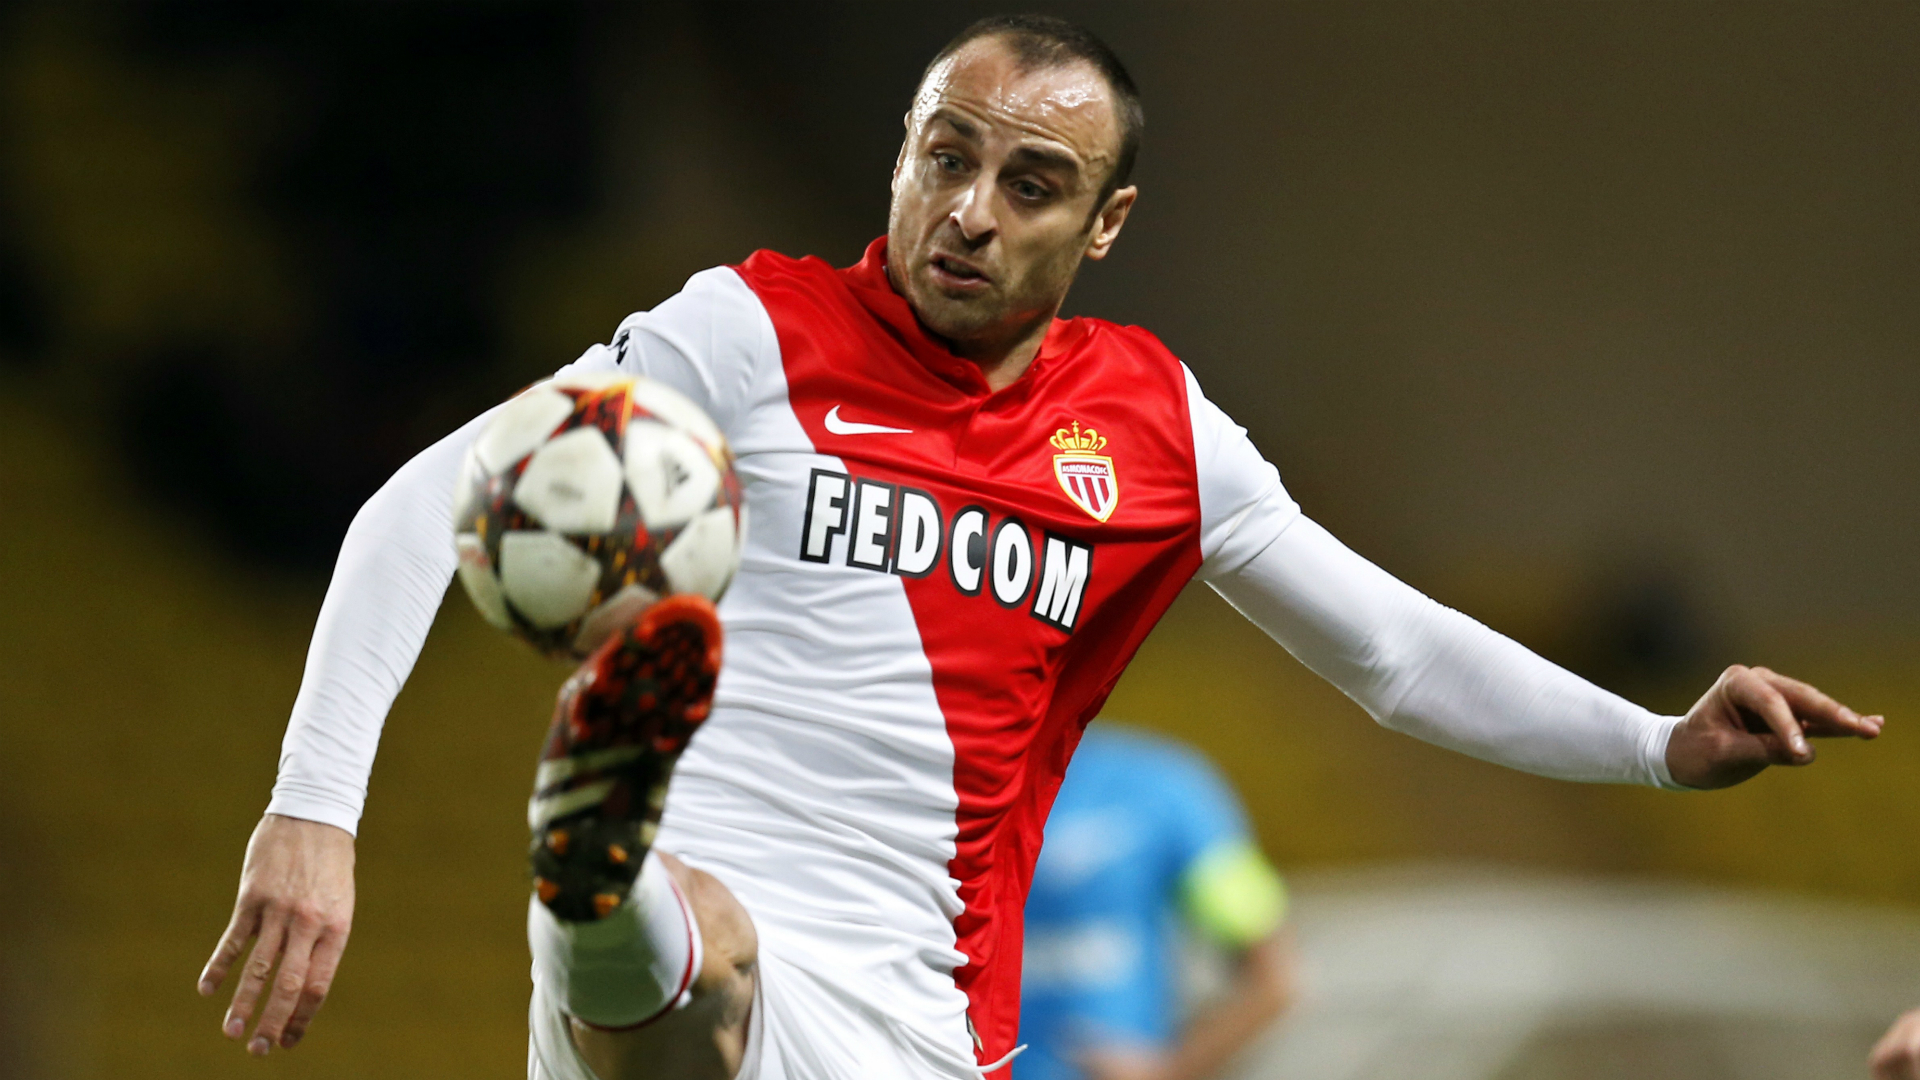 Dimitar Berbatov joins former team-mate Wes Brown at latest club